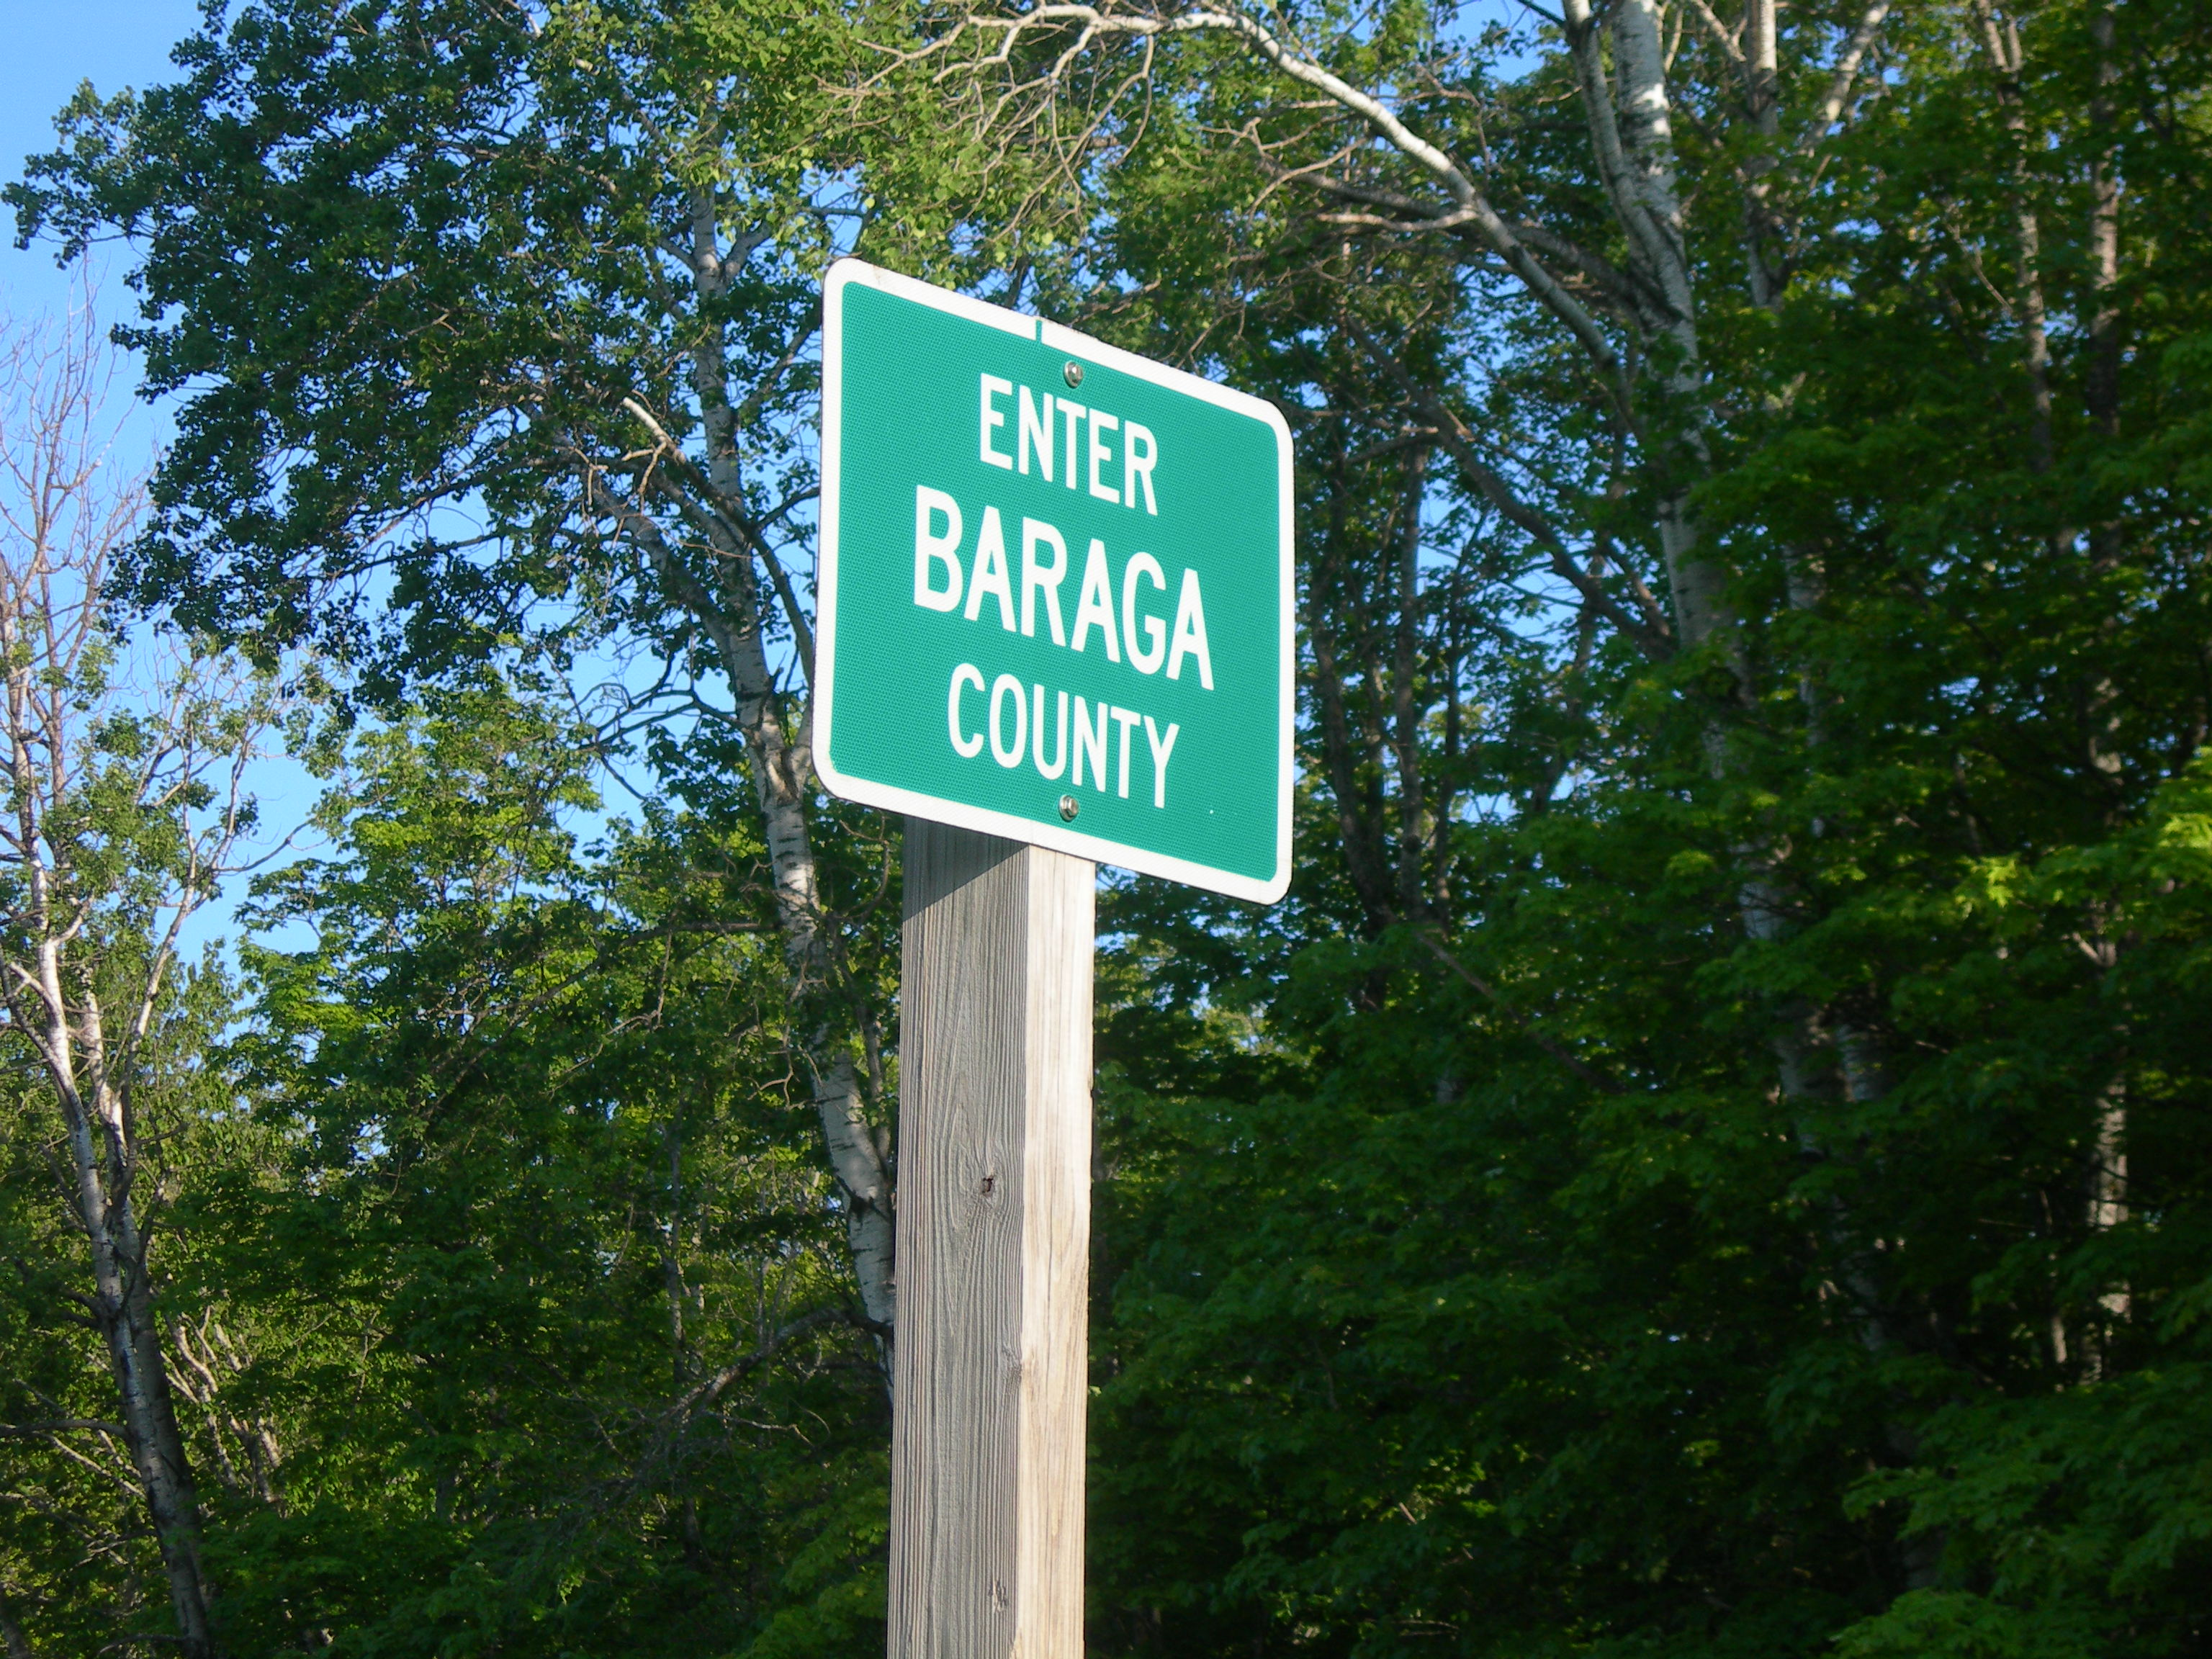 Appeals court bars tribal citizen from entering county in Michigan